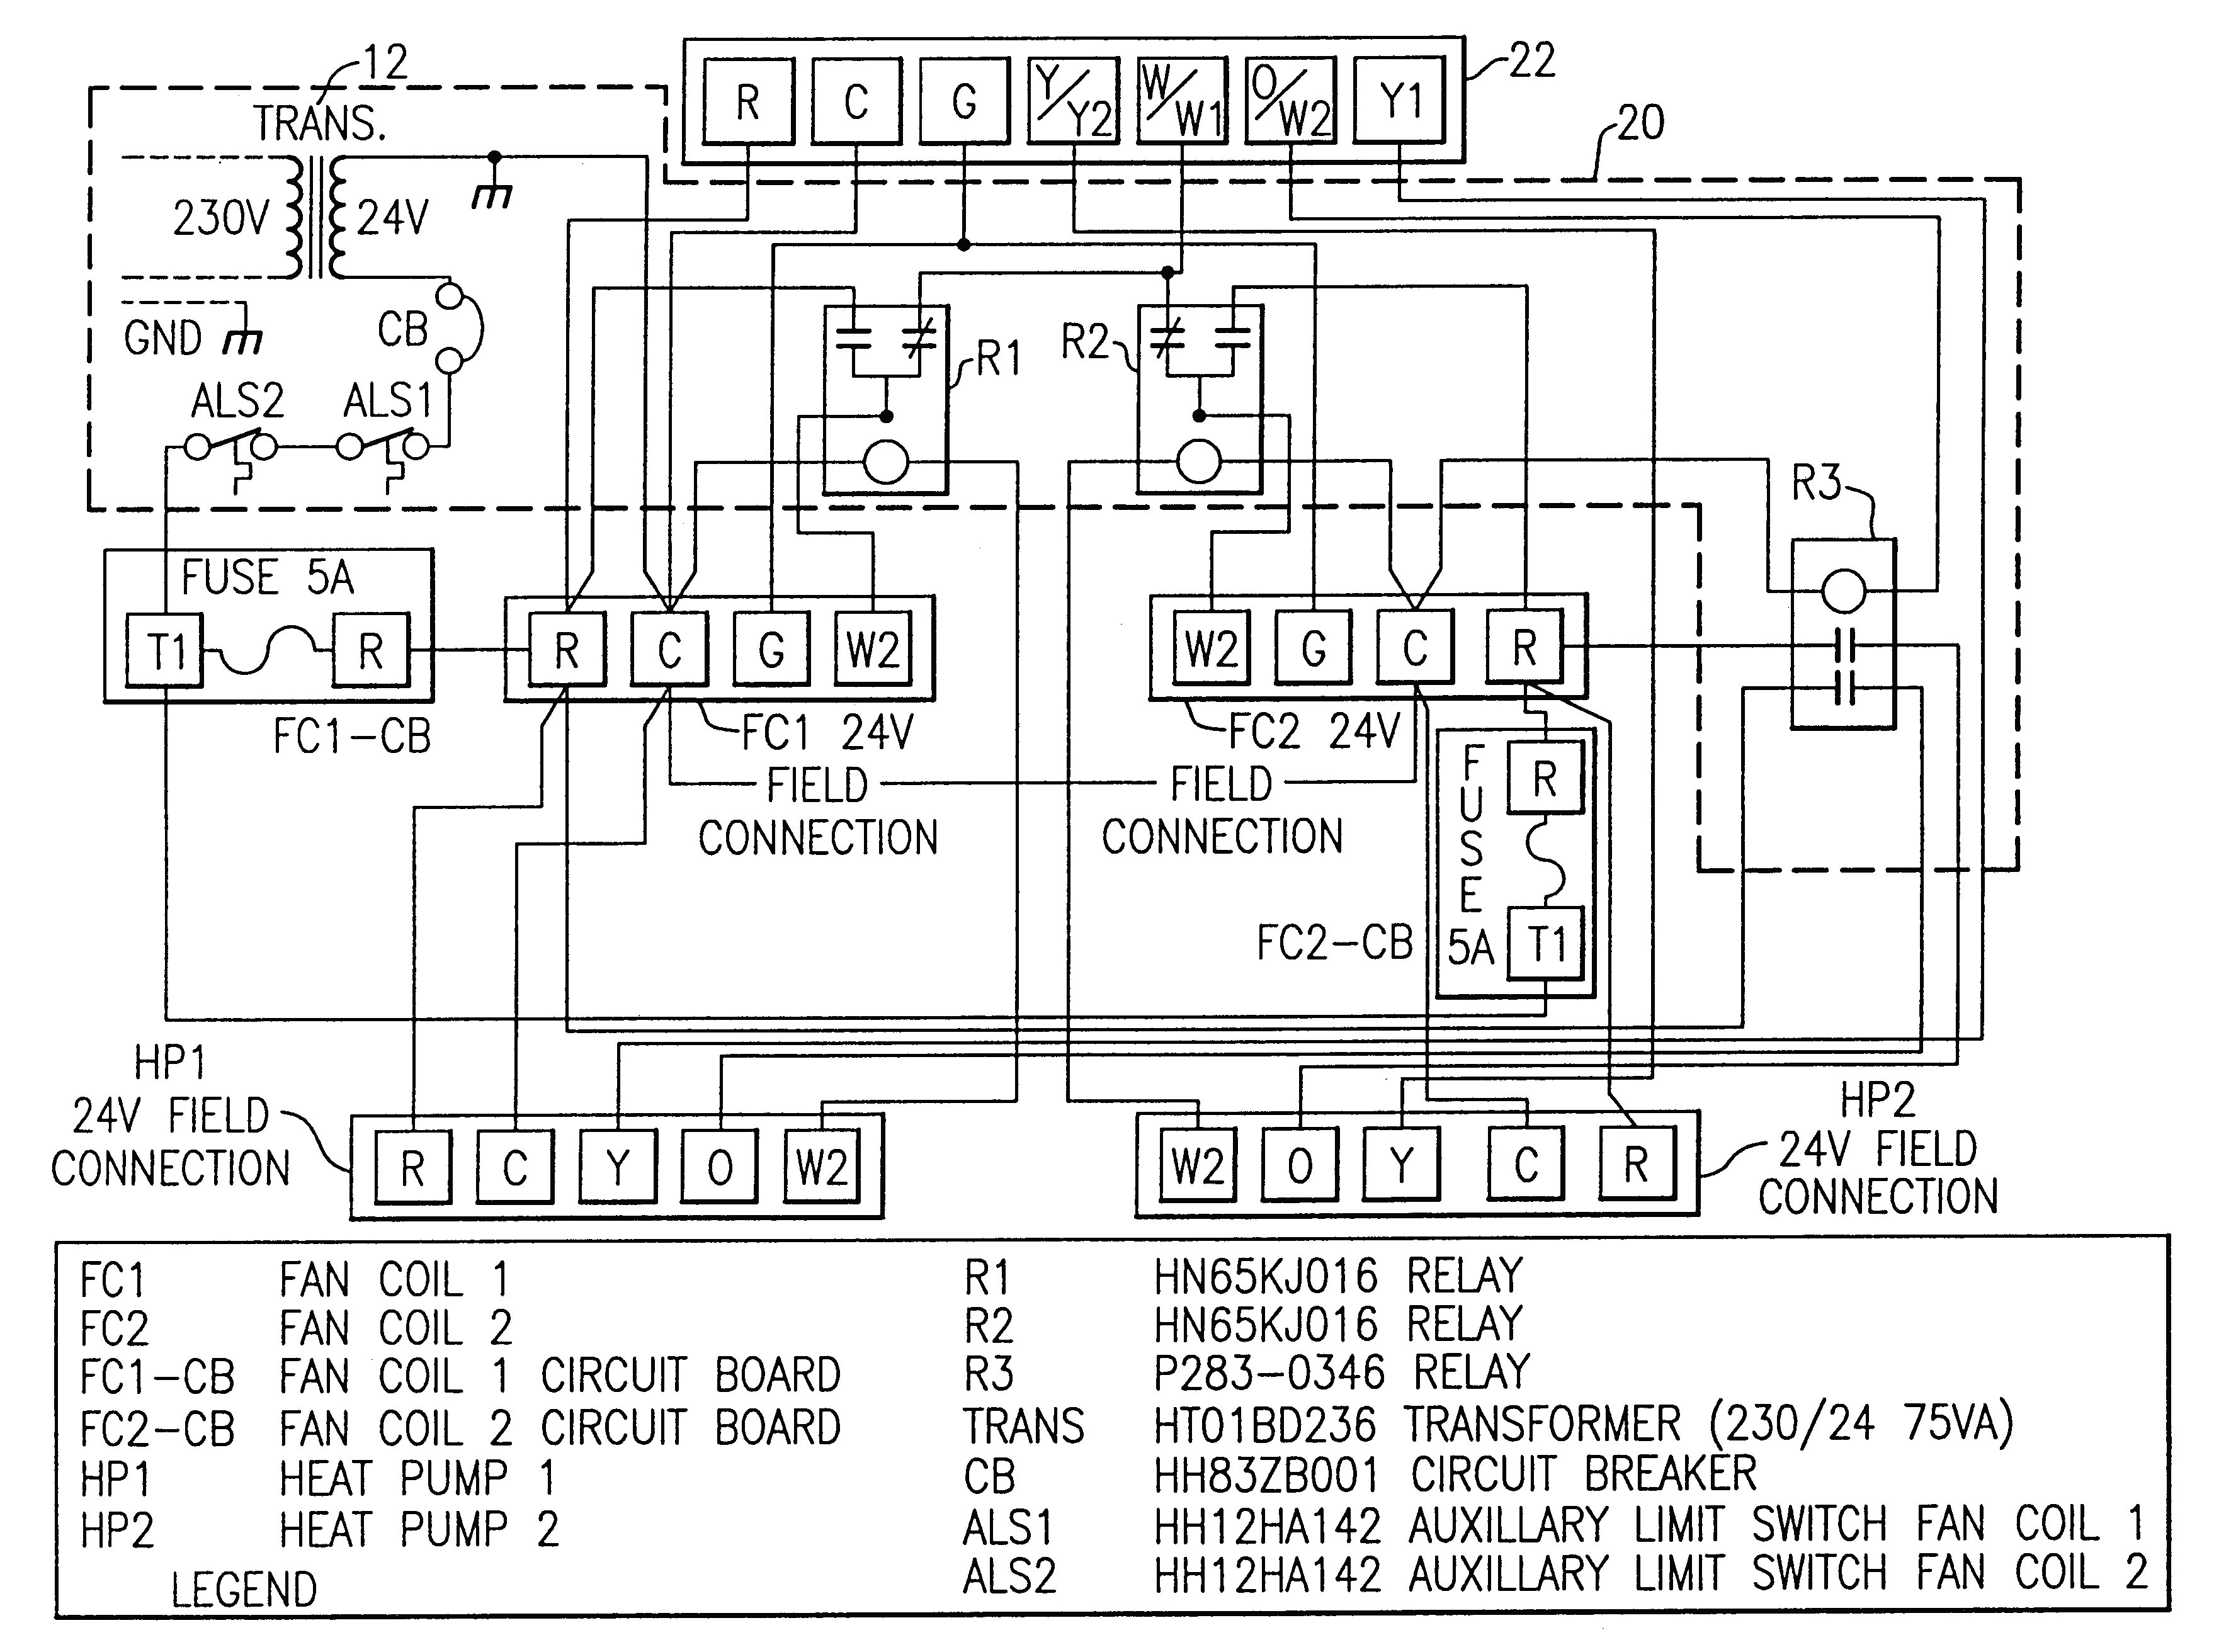 goodman package unit wiring diagram Collection-Goodman Heat Pump Package Unit Wiring Diagram New Lennox Thermostat Mesmerizing 12-a